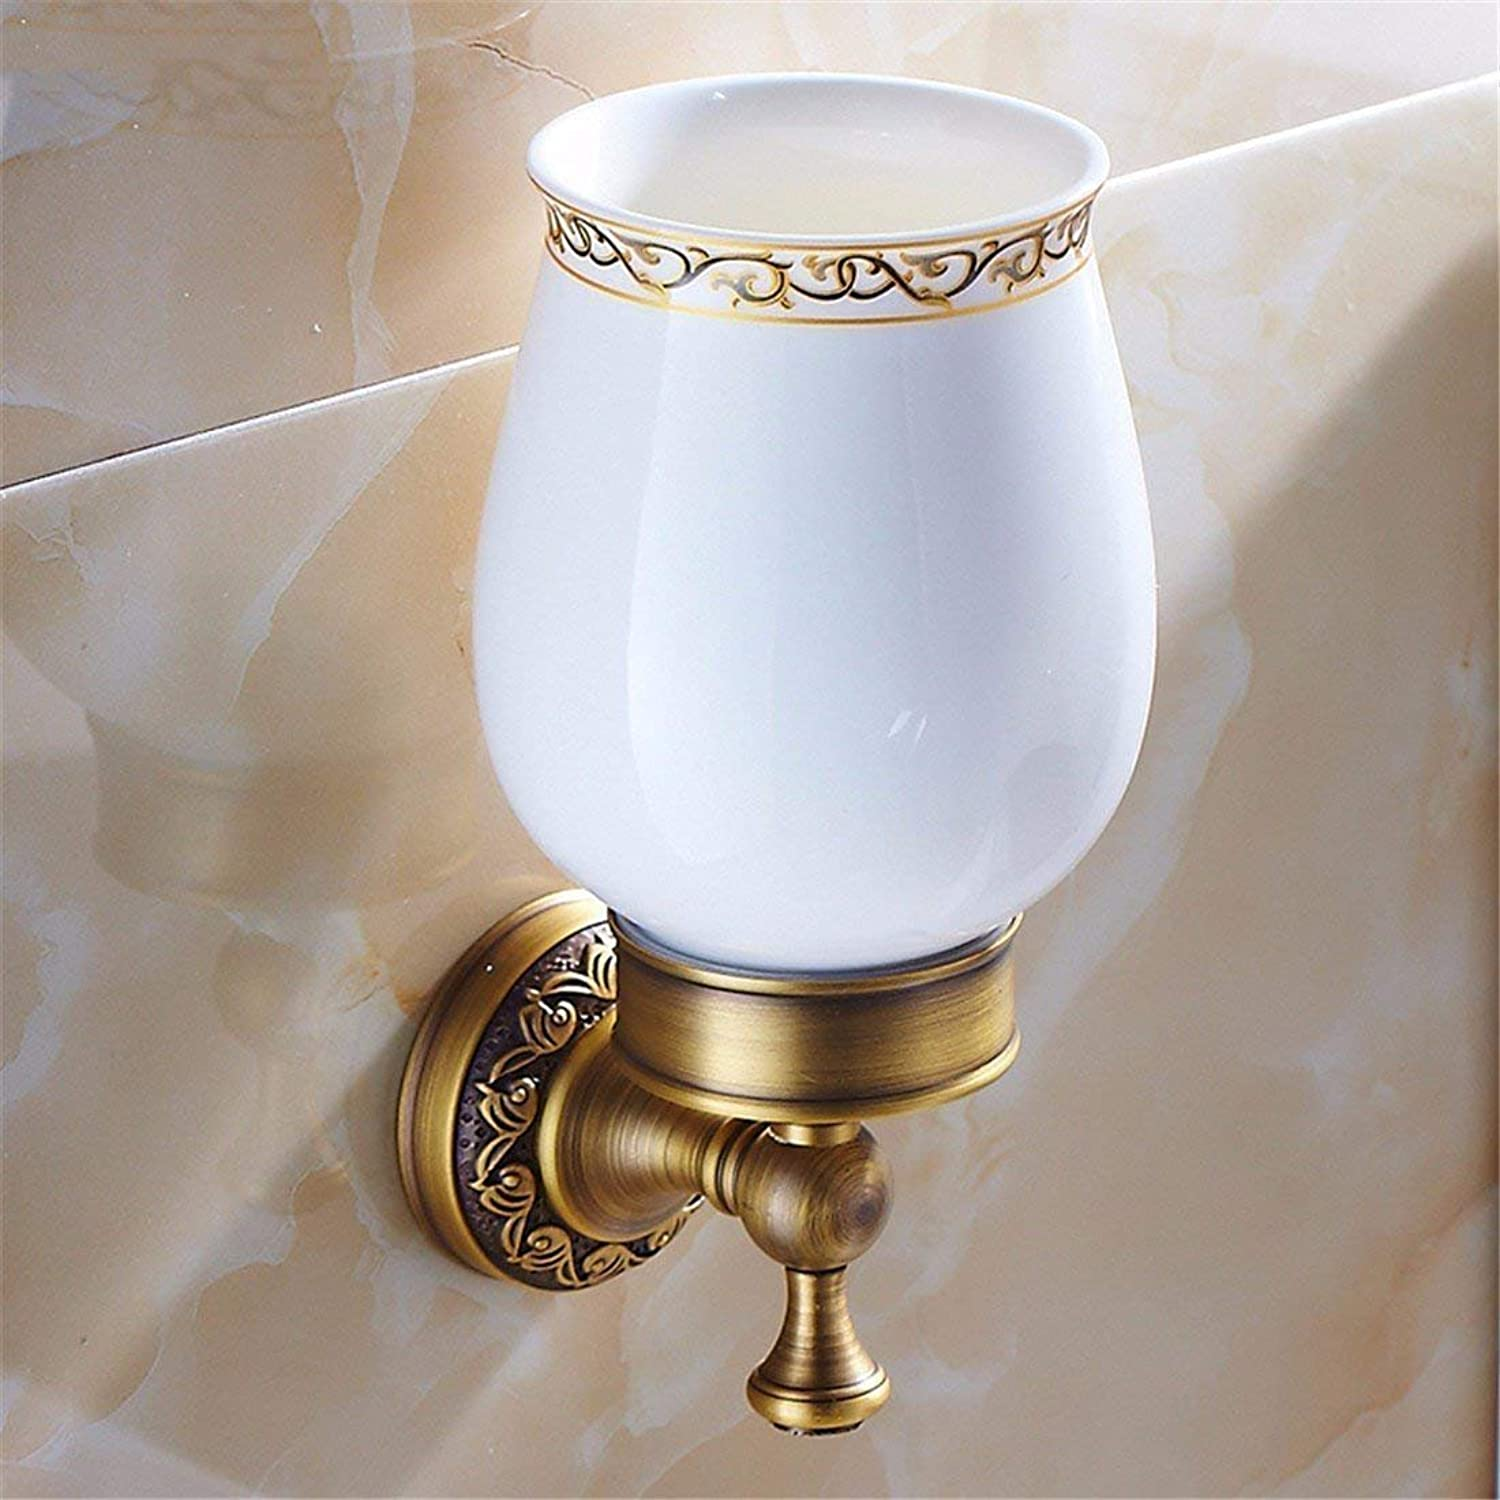 All Christmas Ancient Bronze Copper-Style Carved Accessories for Bathroom, Toilet, Toothbrush, a Single Rack Cabinet Cup